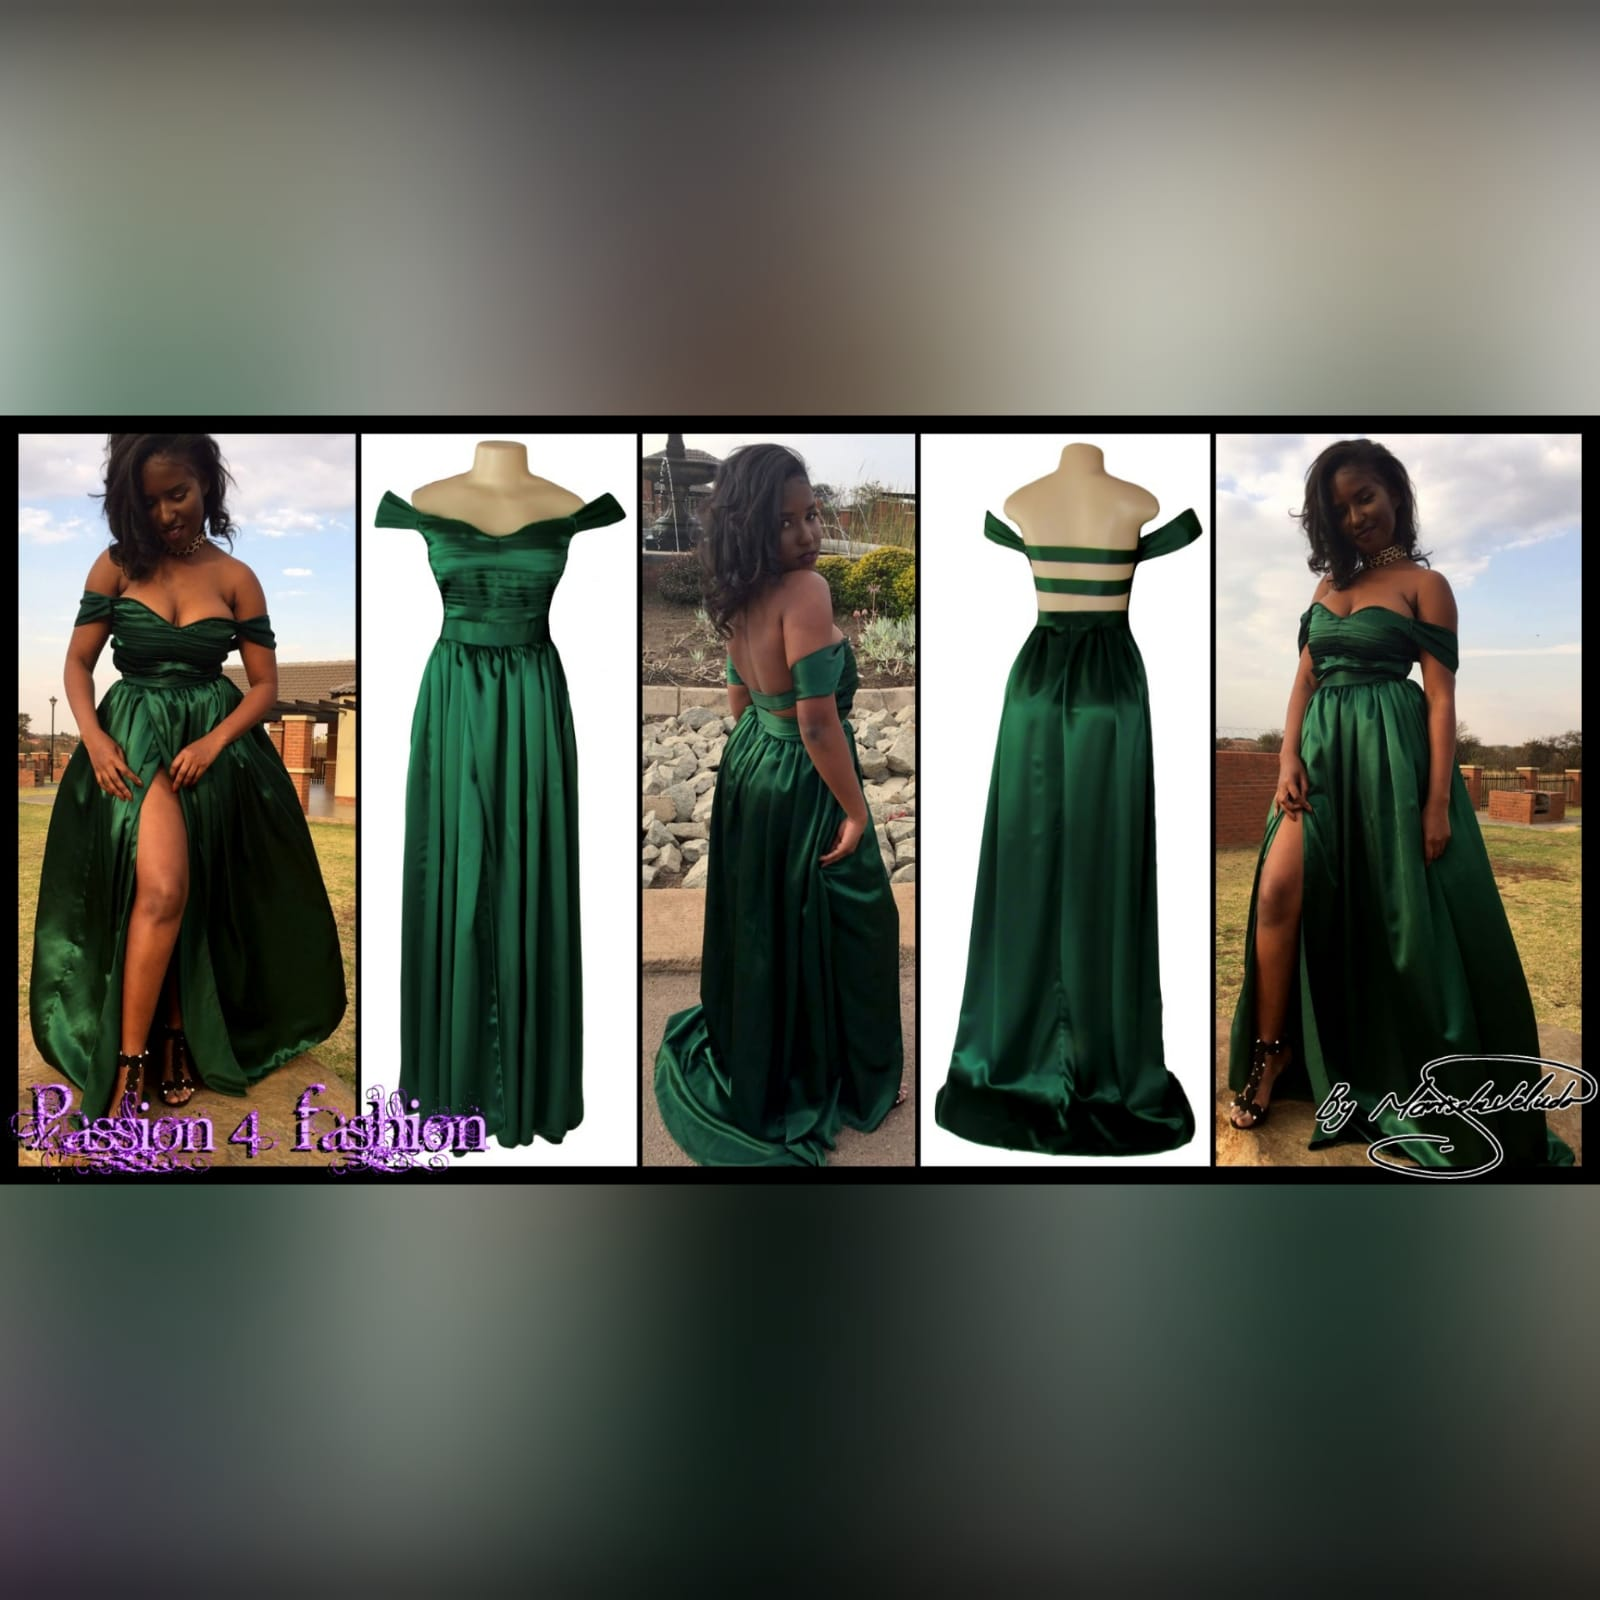 Emerald green satin flowy formal dress 5 emerald green satin off shoulder flowy formal dress, with a pleated bodice off shoulder short sleeves, naked back detailed with straps. A crossed slit and a small train.